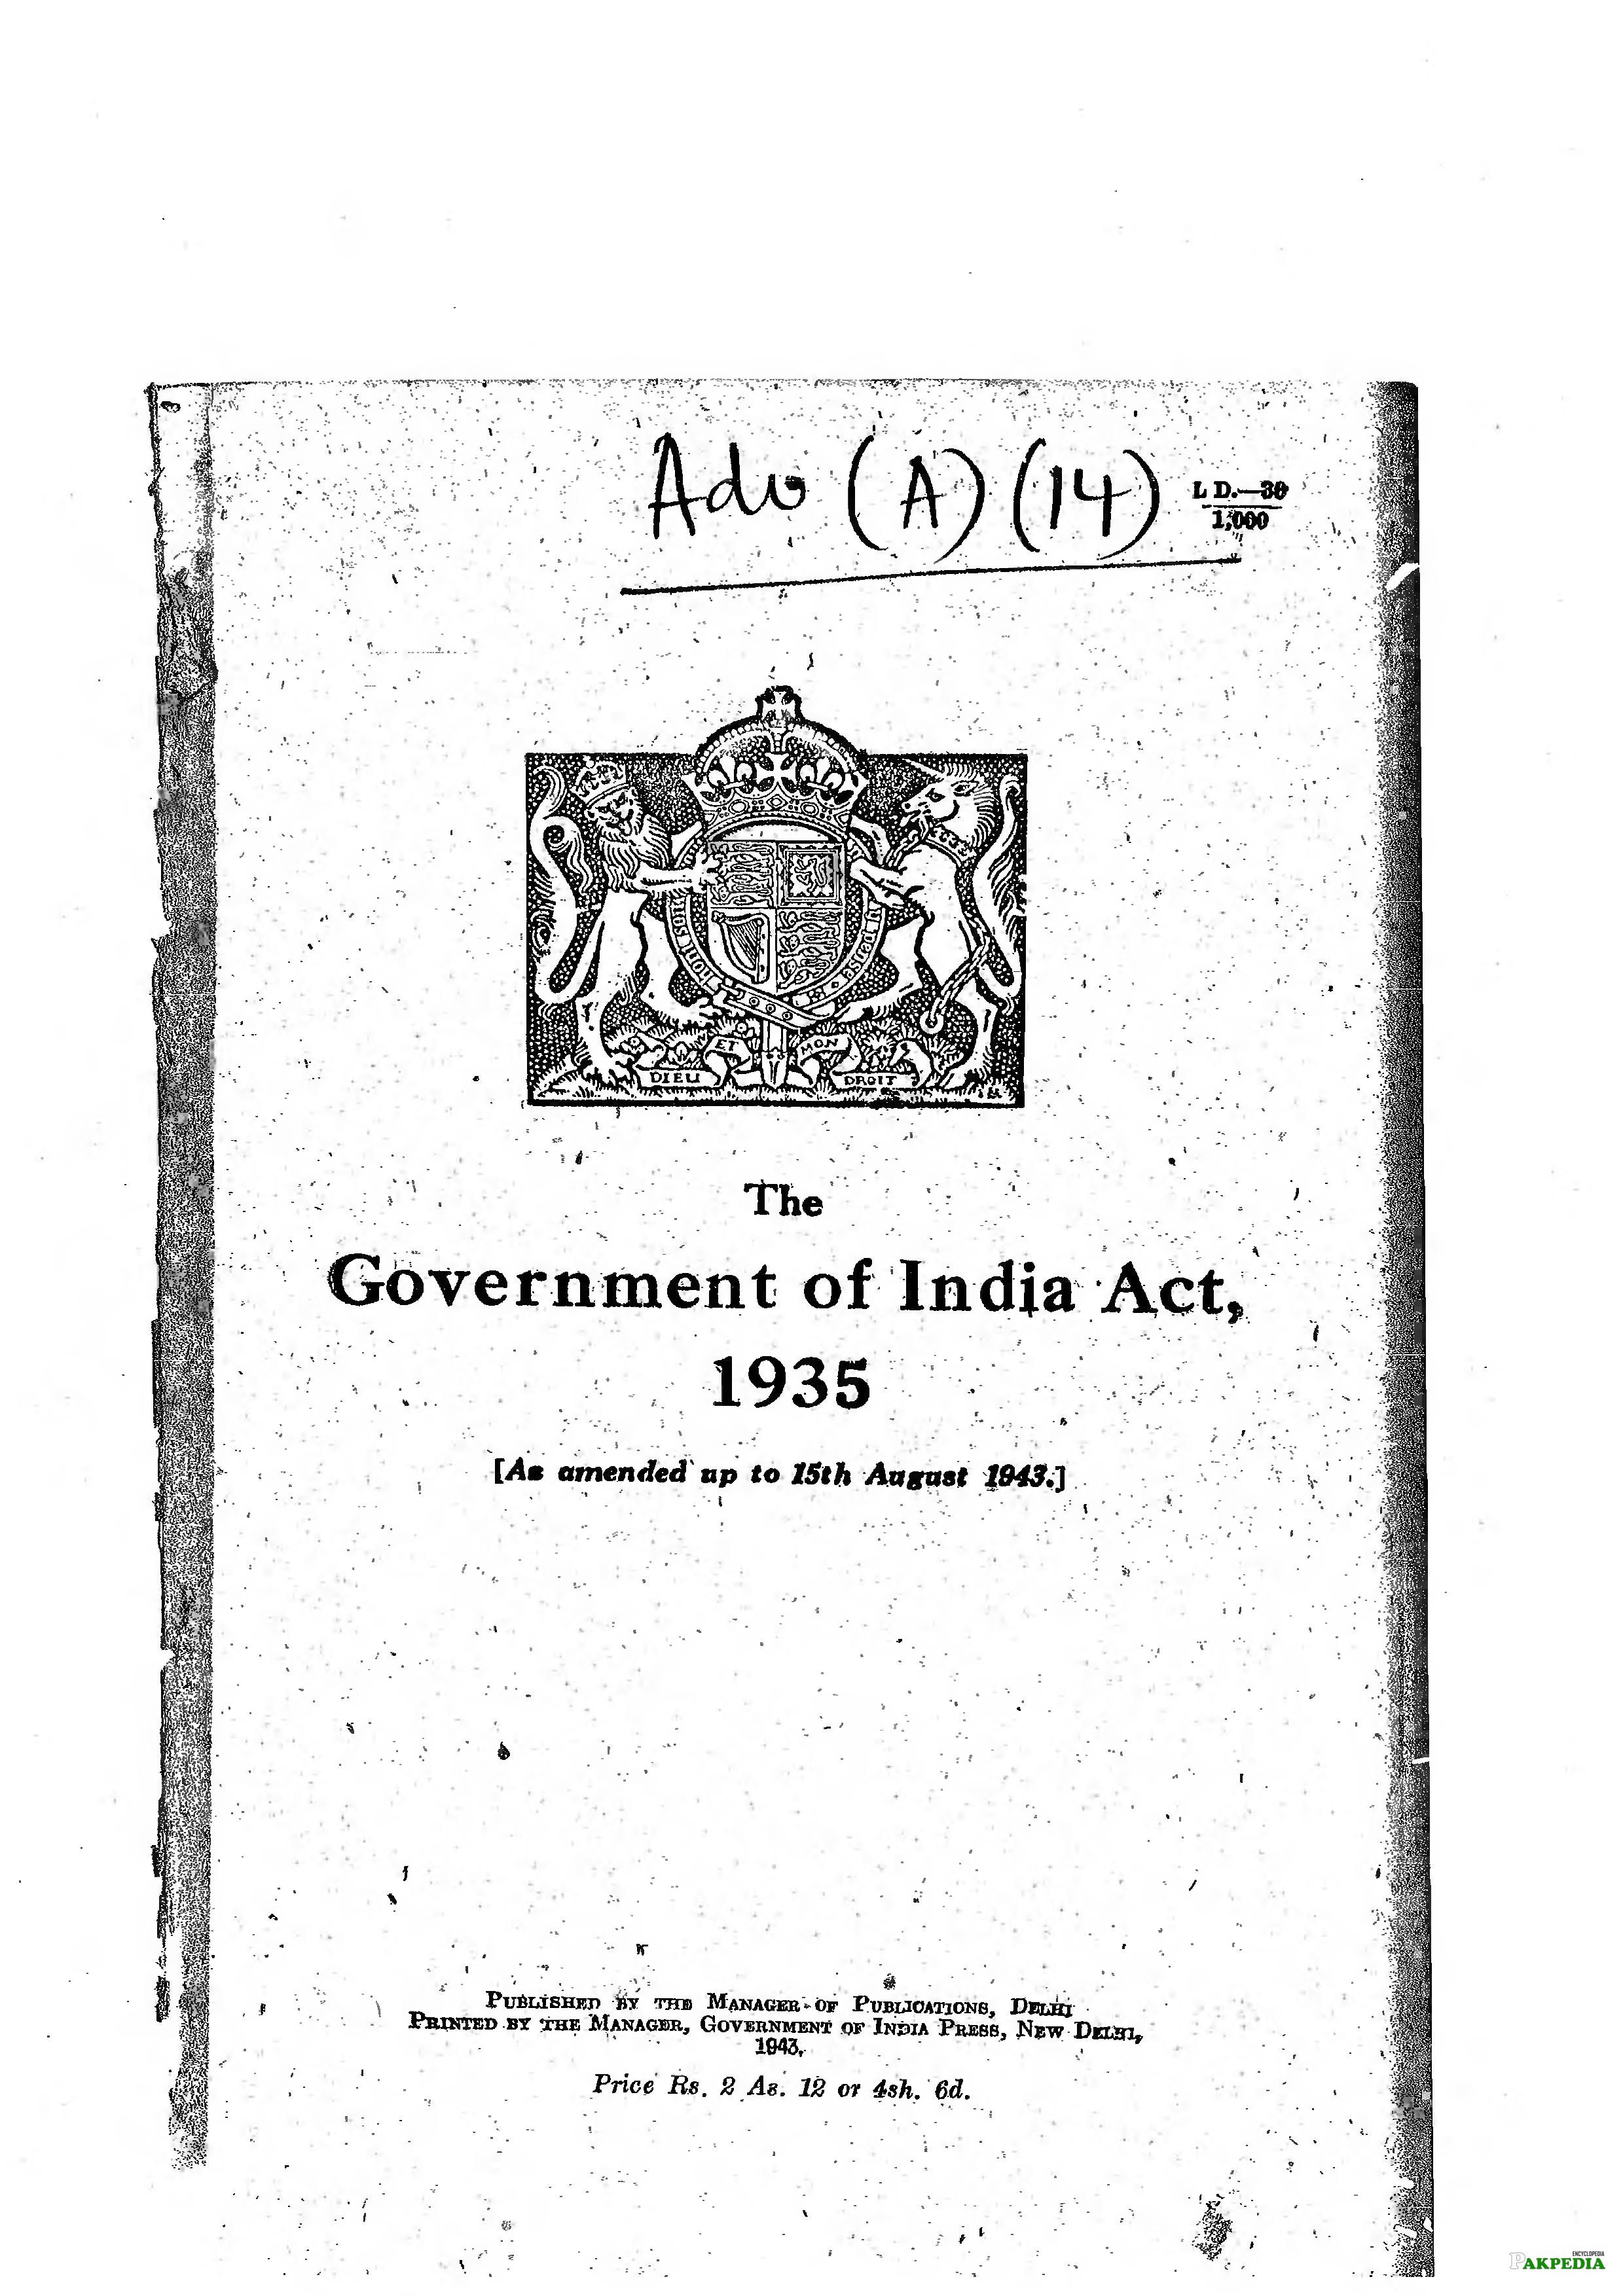 India Act of 1935